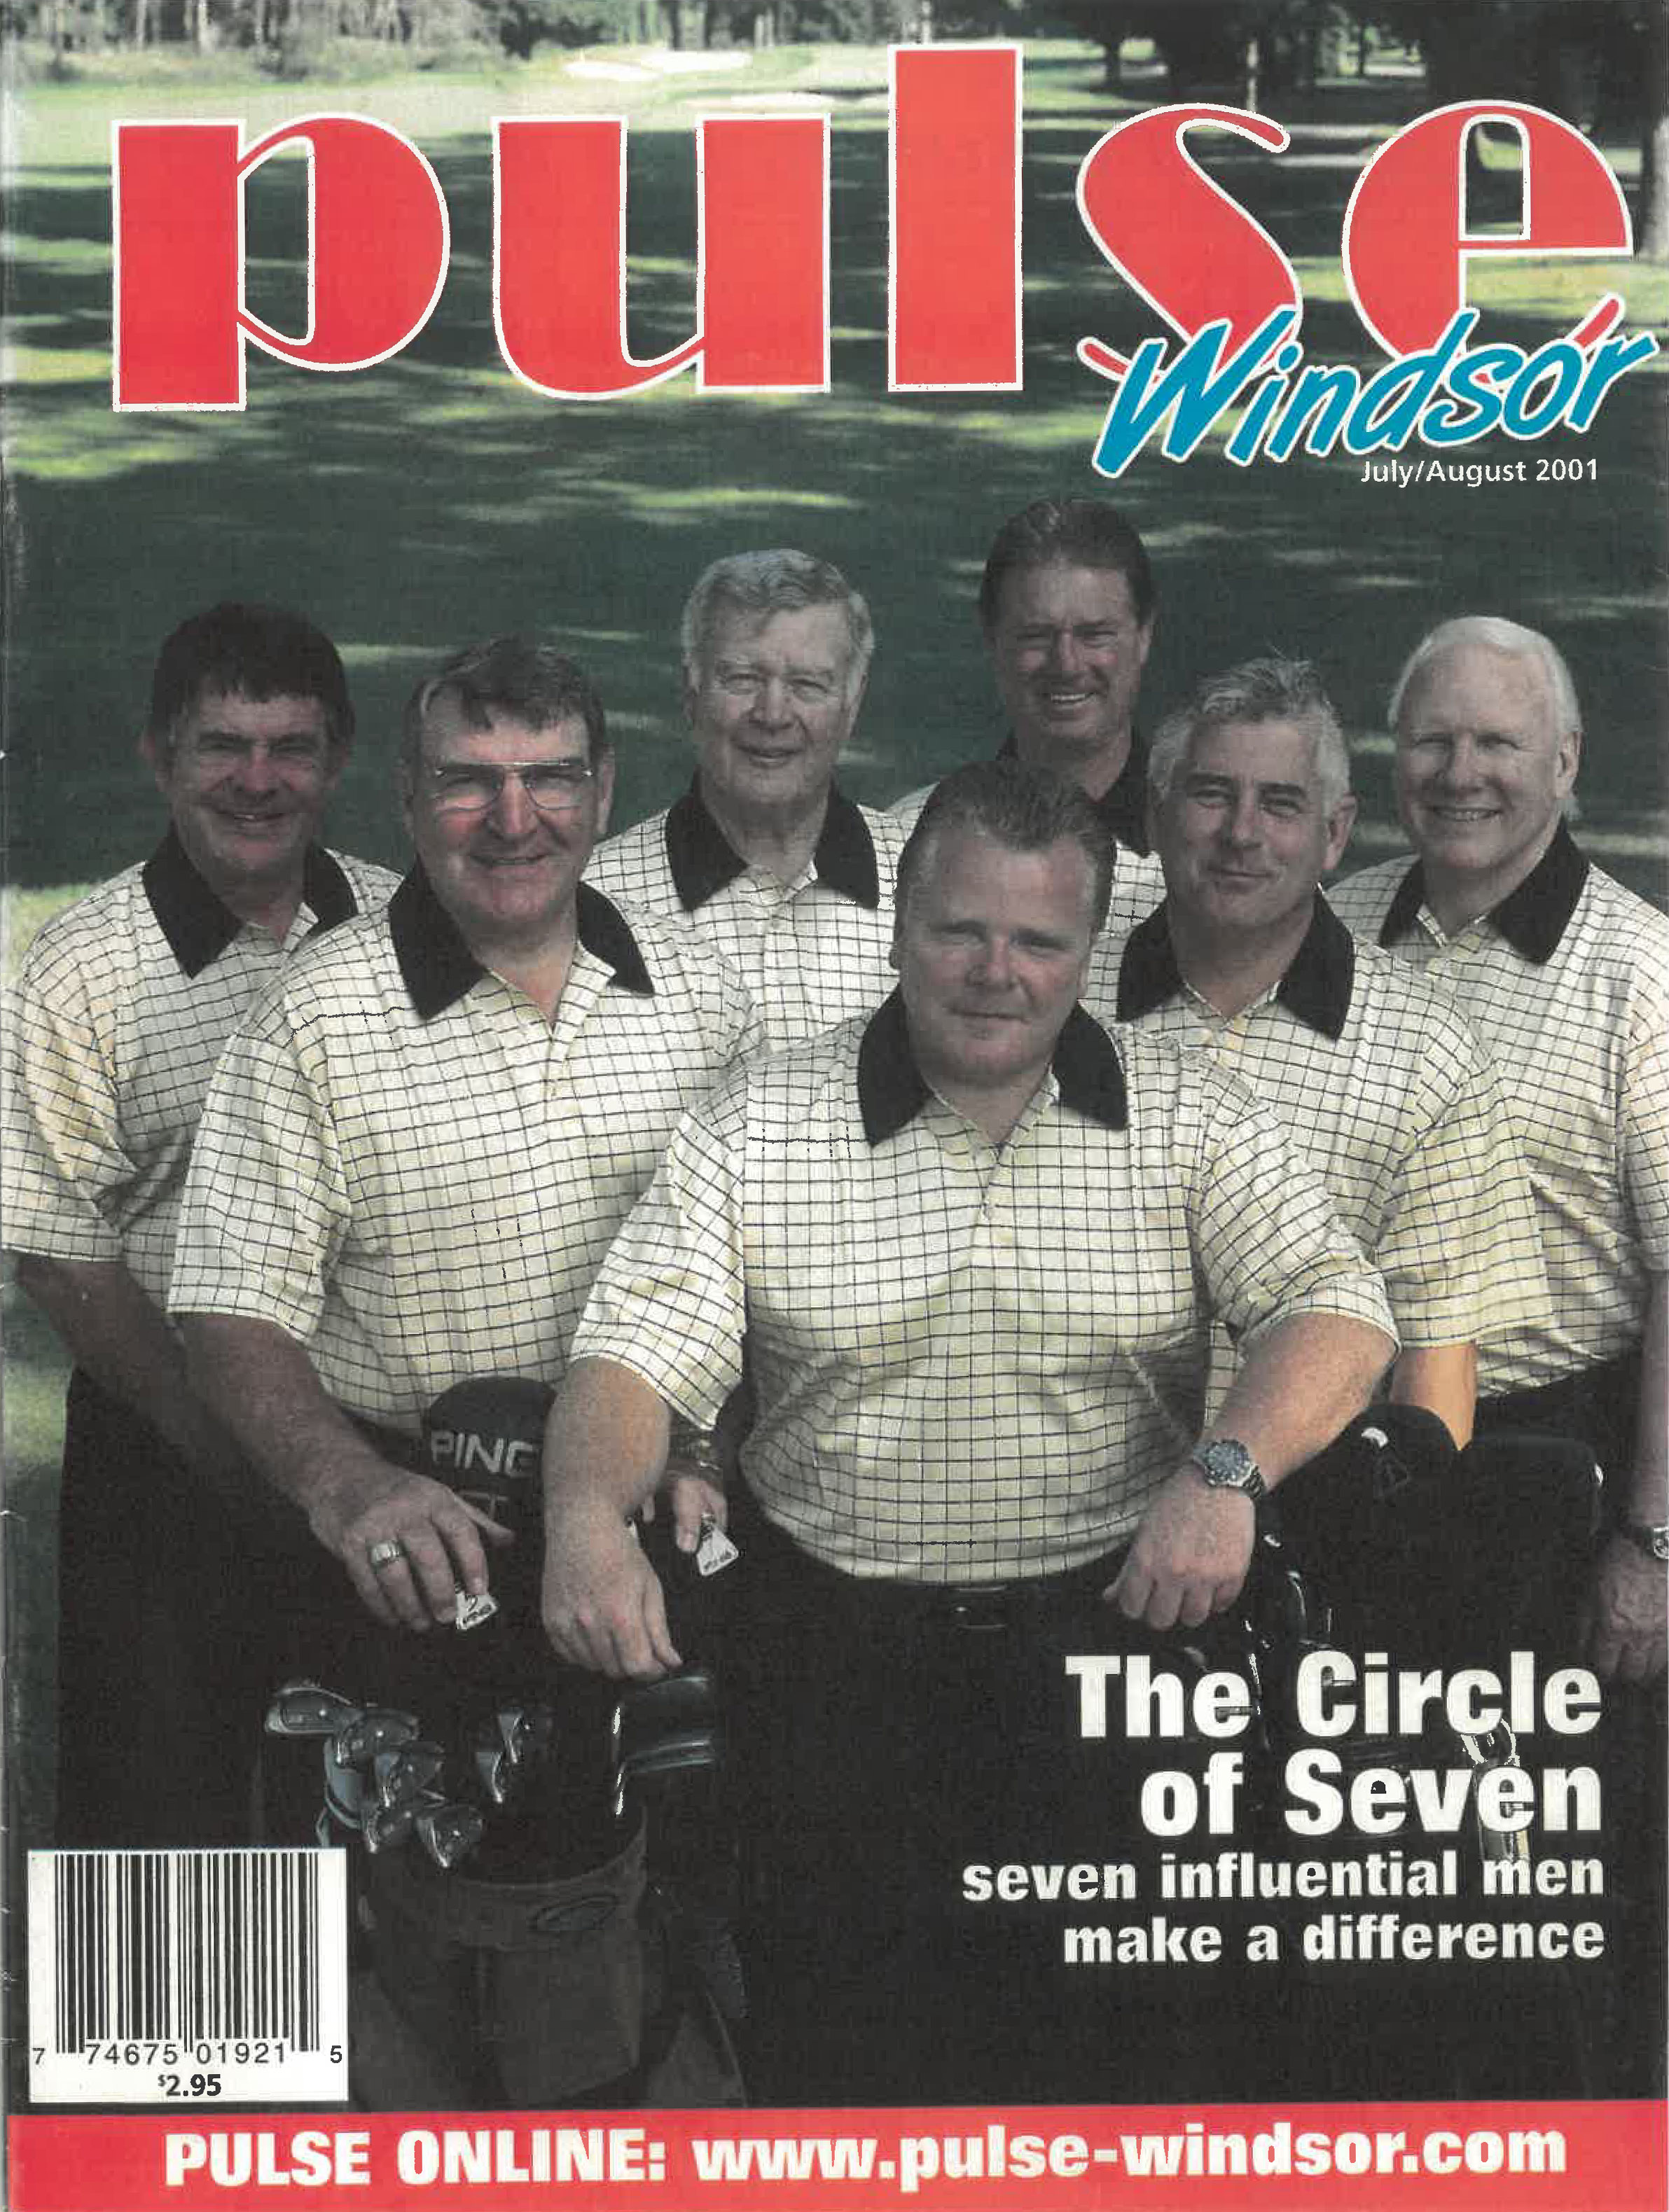 Cover of Pulse Windsor July/August 2001 | The Circle of Seven | Seven Influencial men make a difference